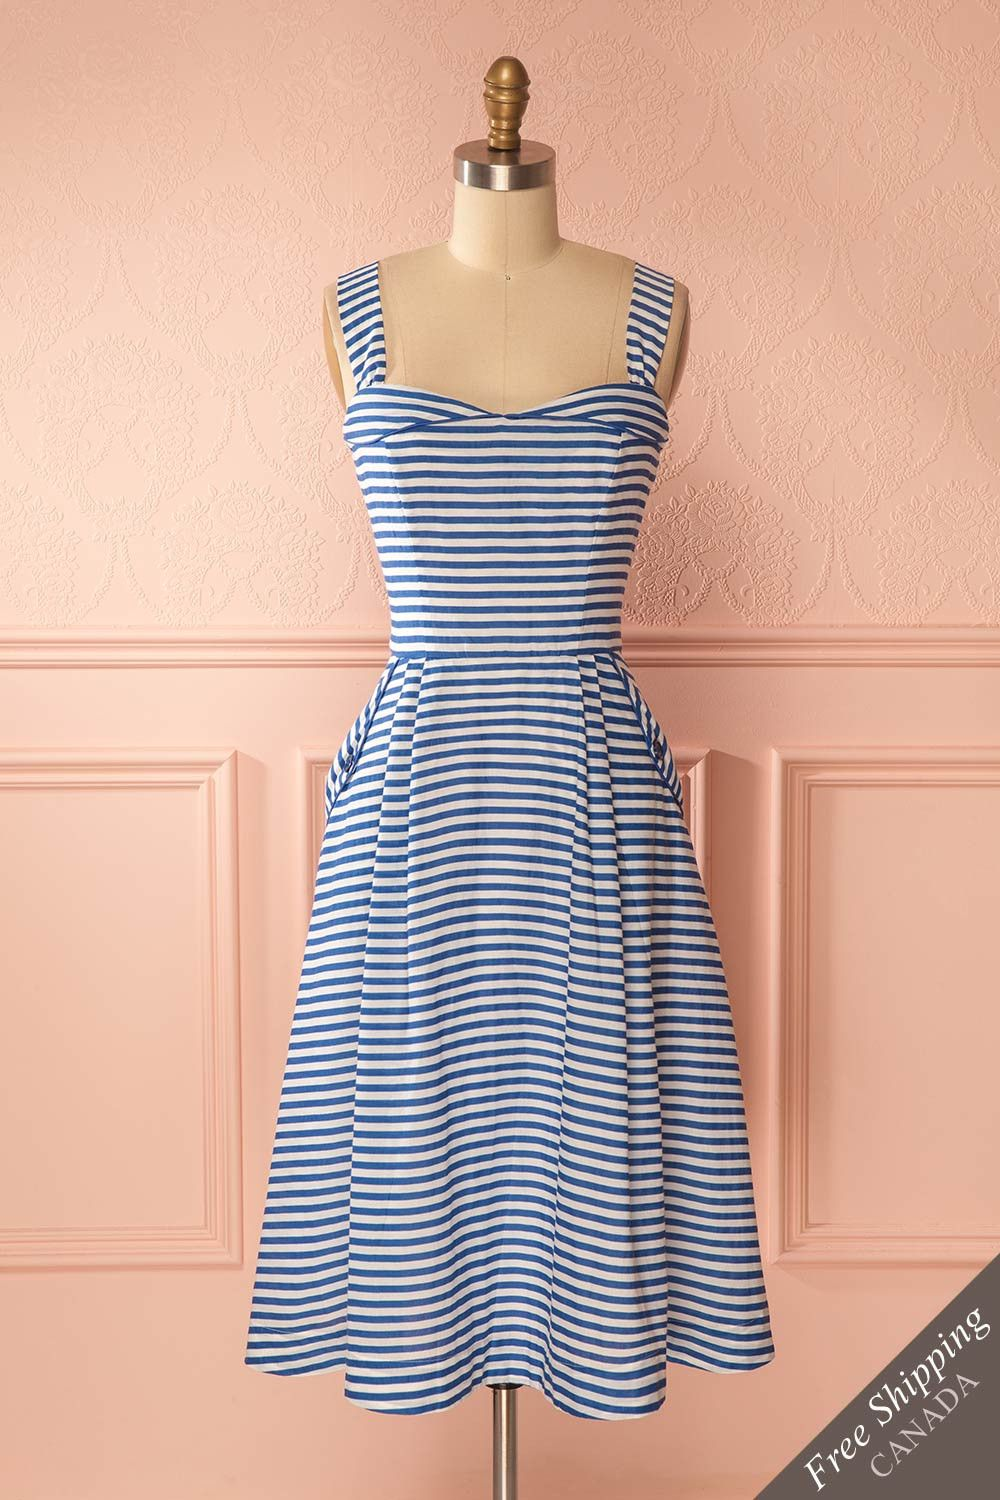 Liliane Boutique1861 How Cute Is This Retro Summer Dress With The Sweetheart N Striped Casual Dresses Sweetheart Neckline Dresses Casual Retro Summer Dress [ 1500 x 1000 Pixel ]